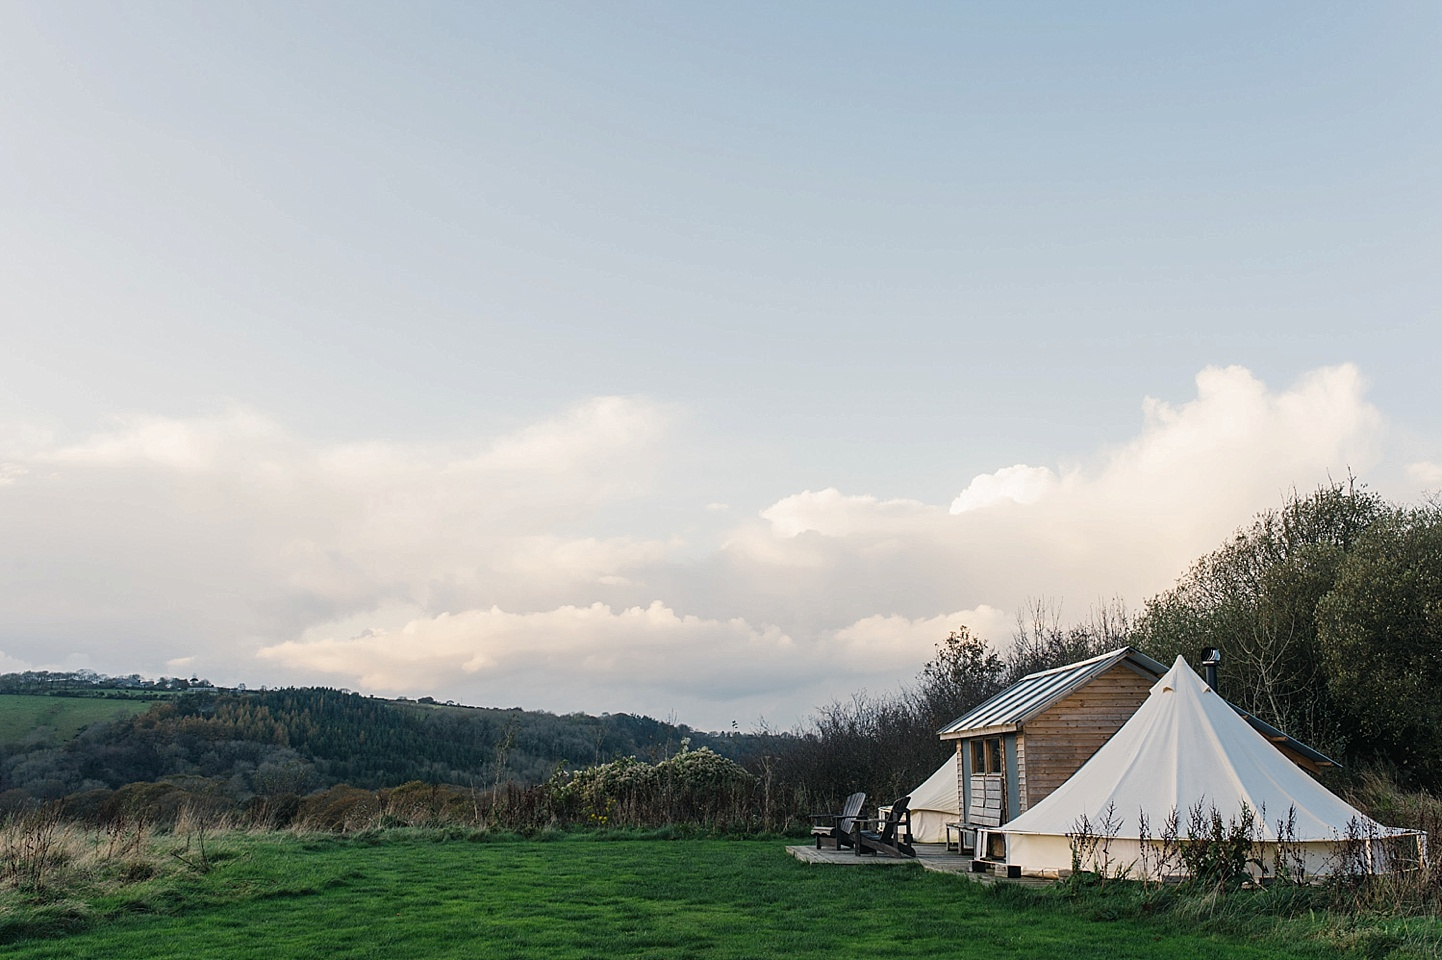 Rustic camping wedding venue in beautiful tipi in Welsh countryside - Fforest wedding photography - Wales alternative wedding photography (c) Babb Photo - alternative wedding photographer